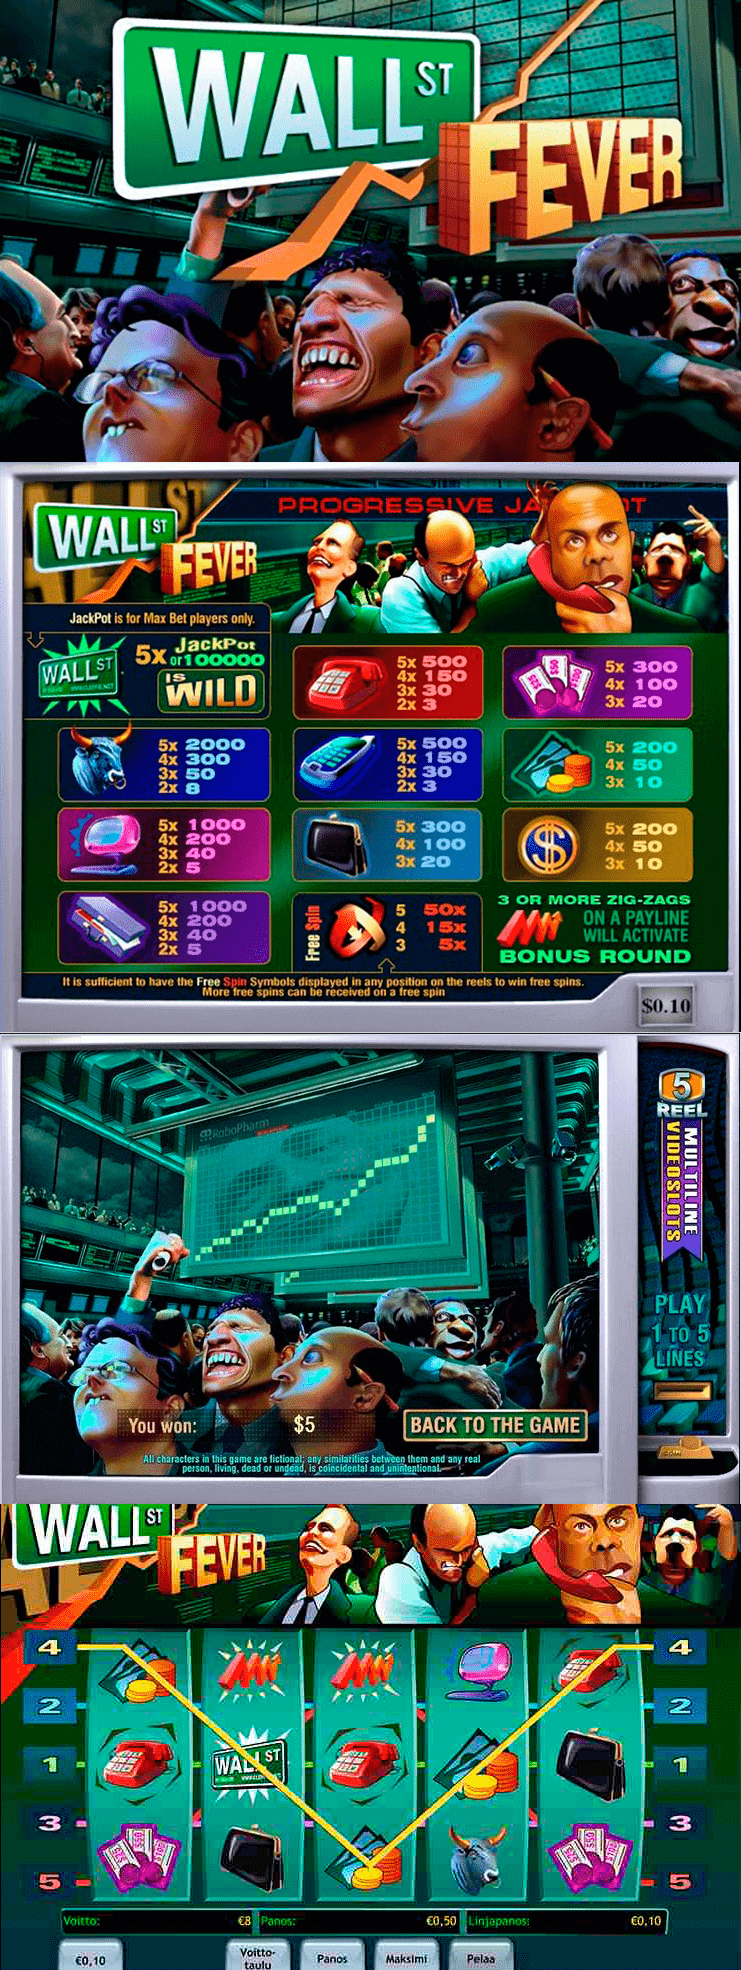 Play Wall Street Fever Slots Online at Casino.com NZ